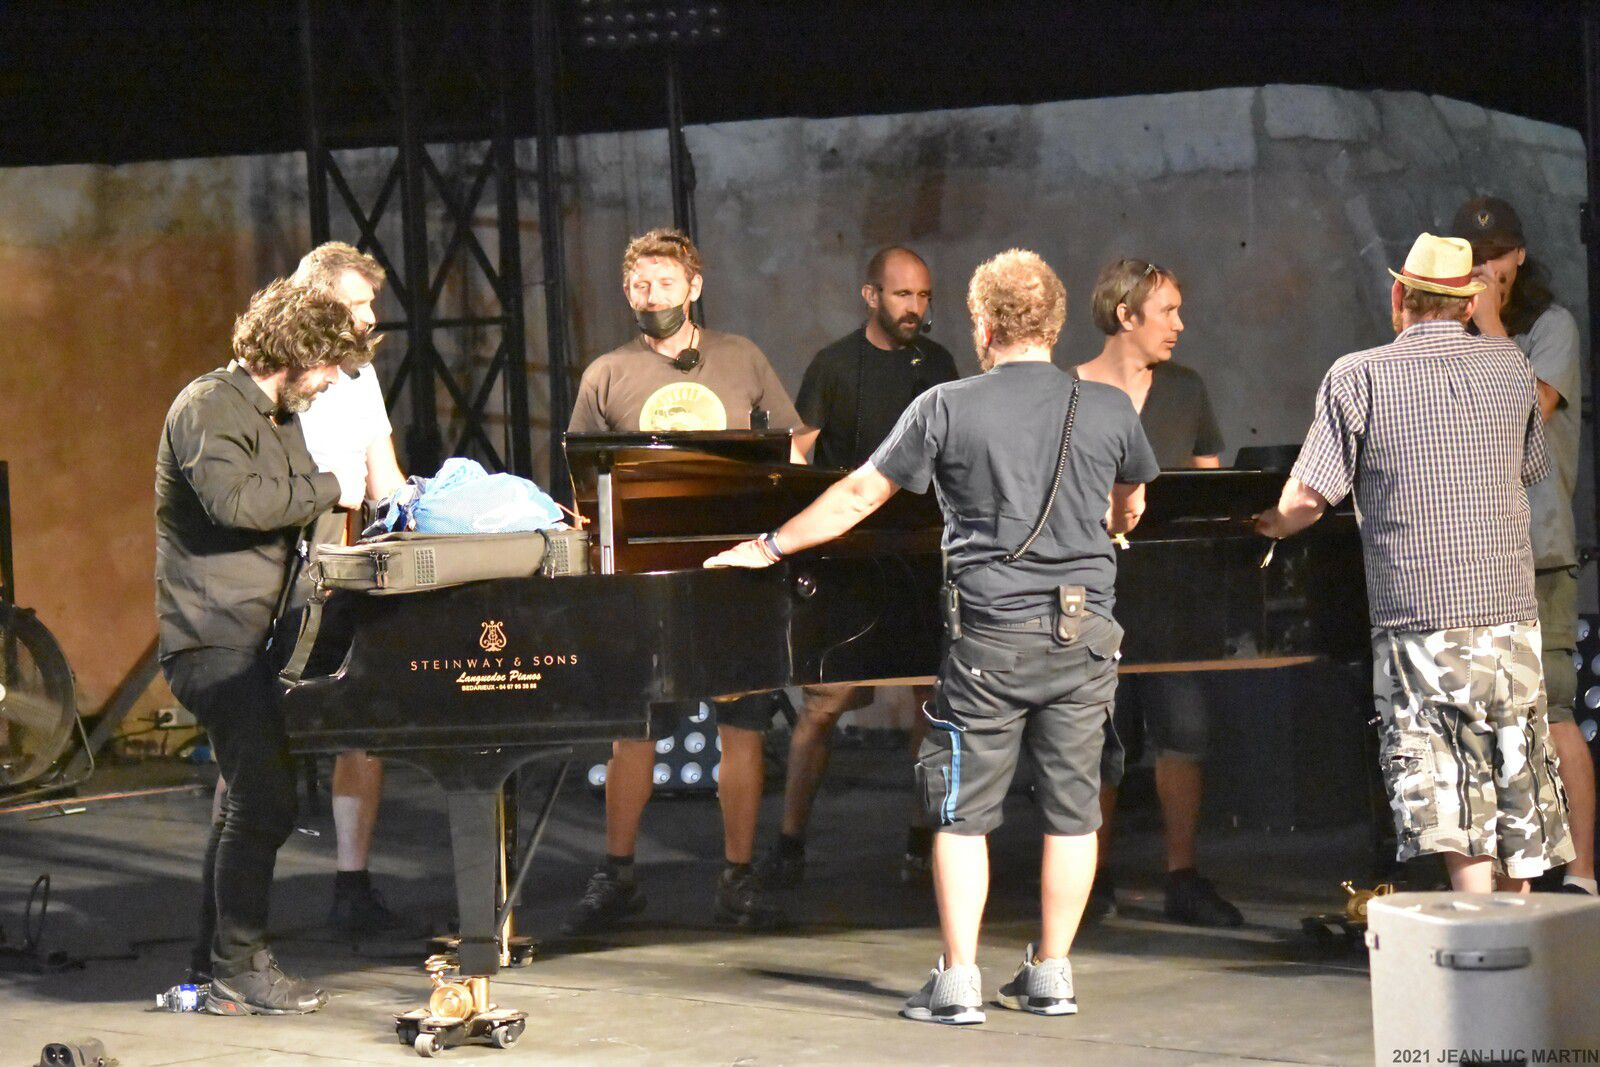 QUAND BENJAMIN MOUSSAY DEMENAGE LE STEINWAY...